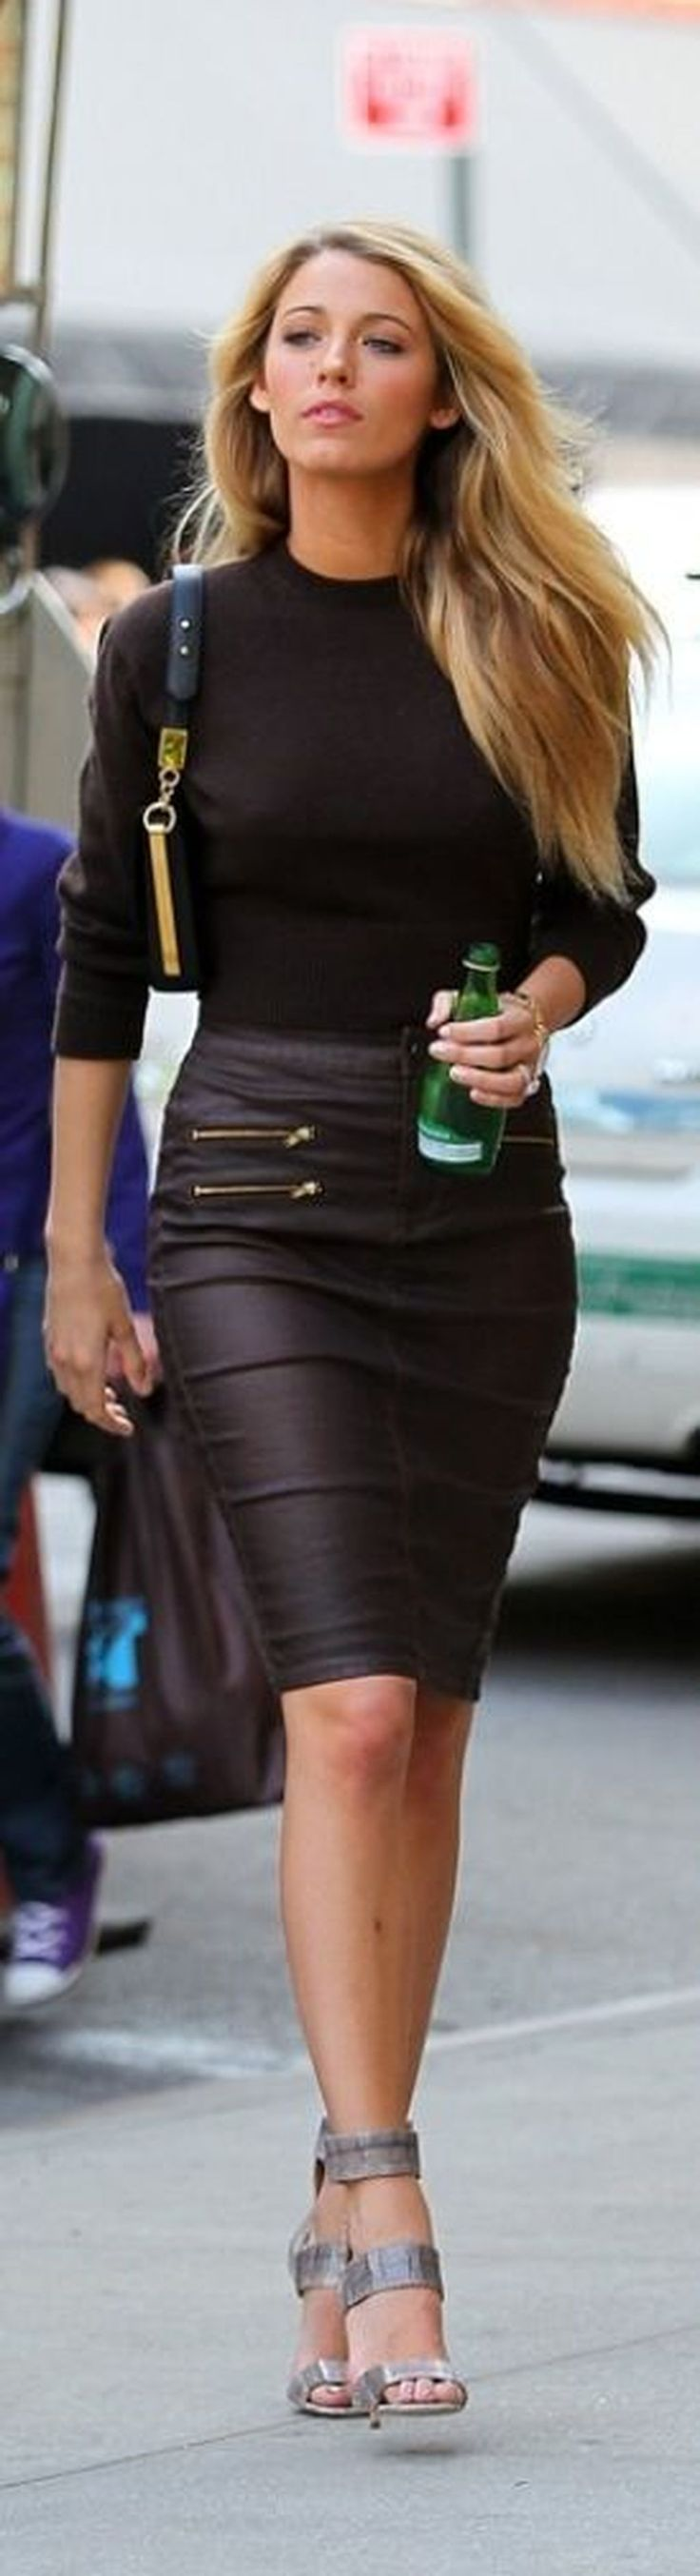 Cool 49 Cool Winter Outfits Ideas With Pencil Skirt. More at https://wear4trend.com/2018/01/19/49-cool-winter-outfits-ideas-pencil-skirt/